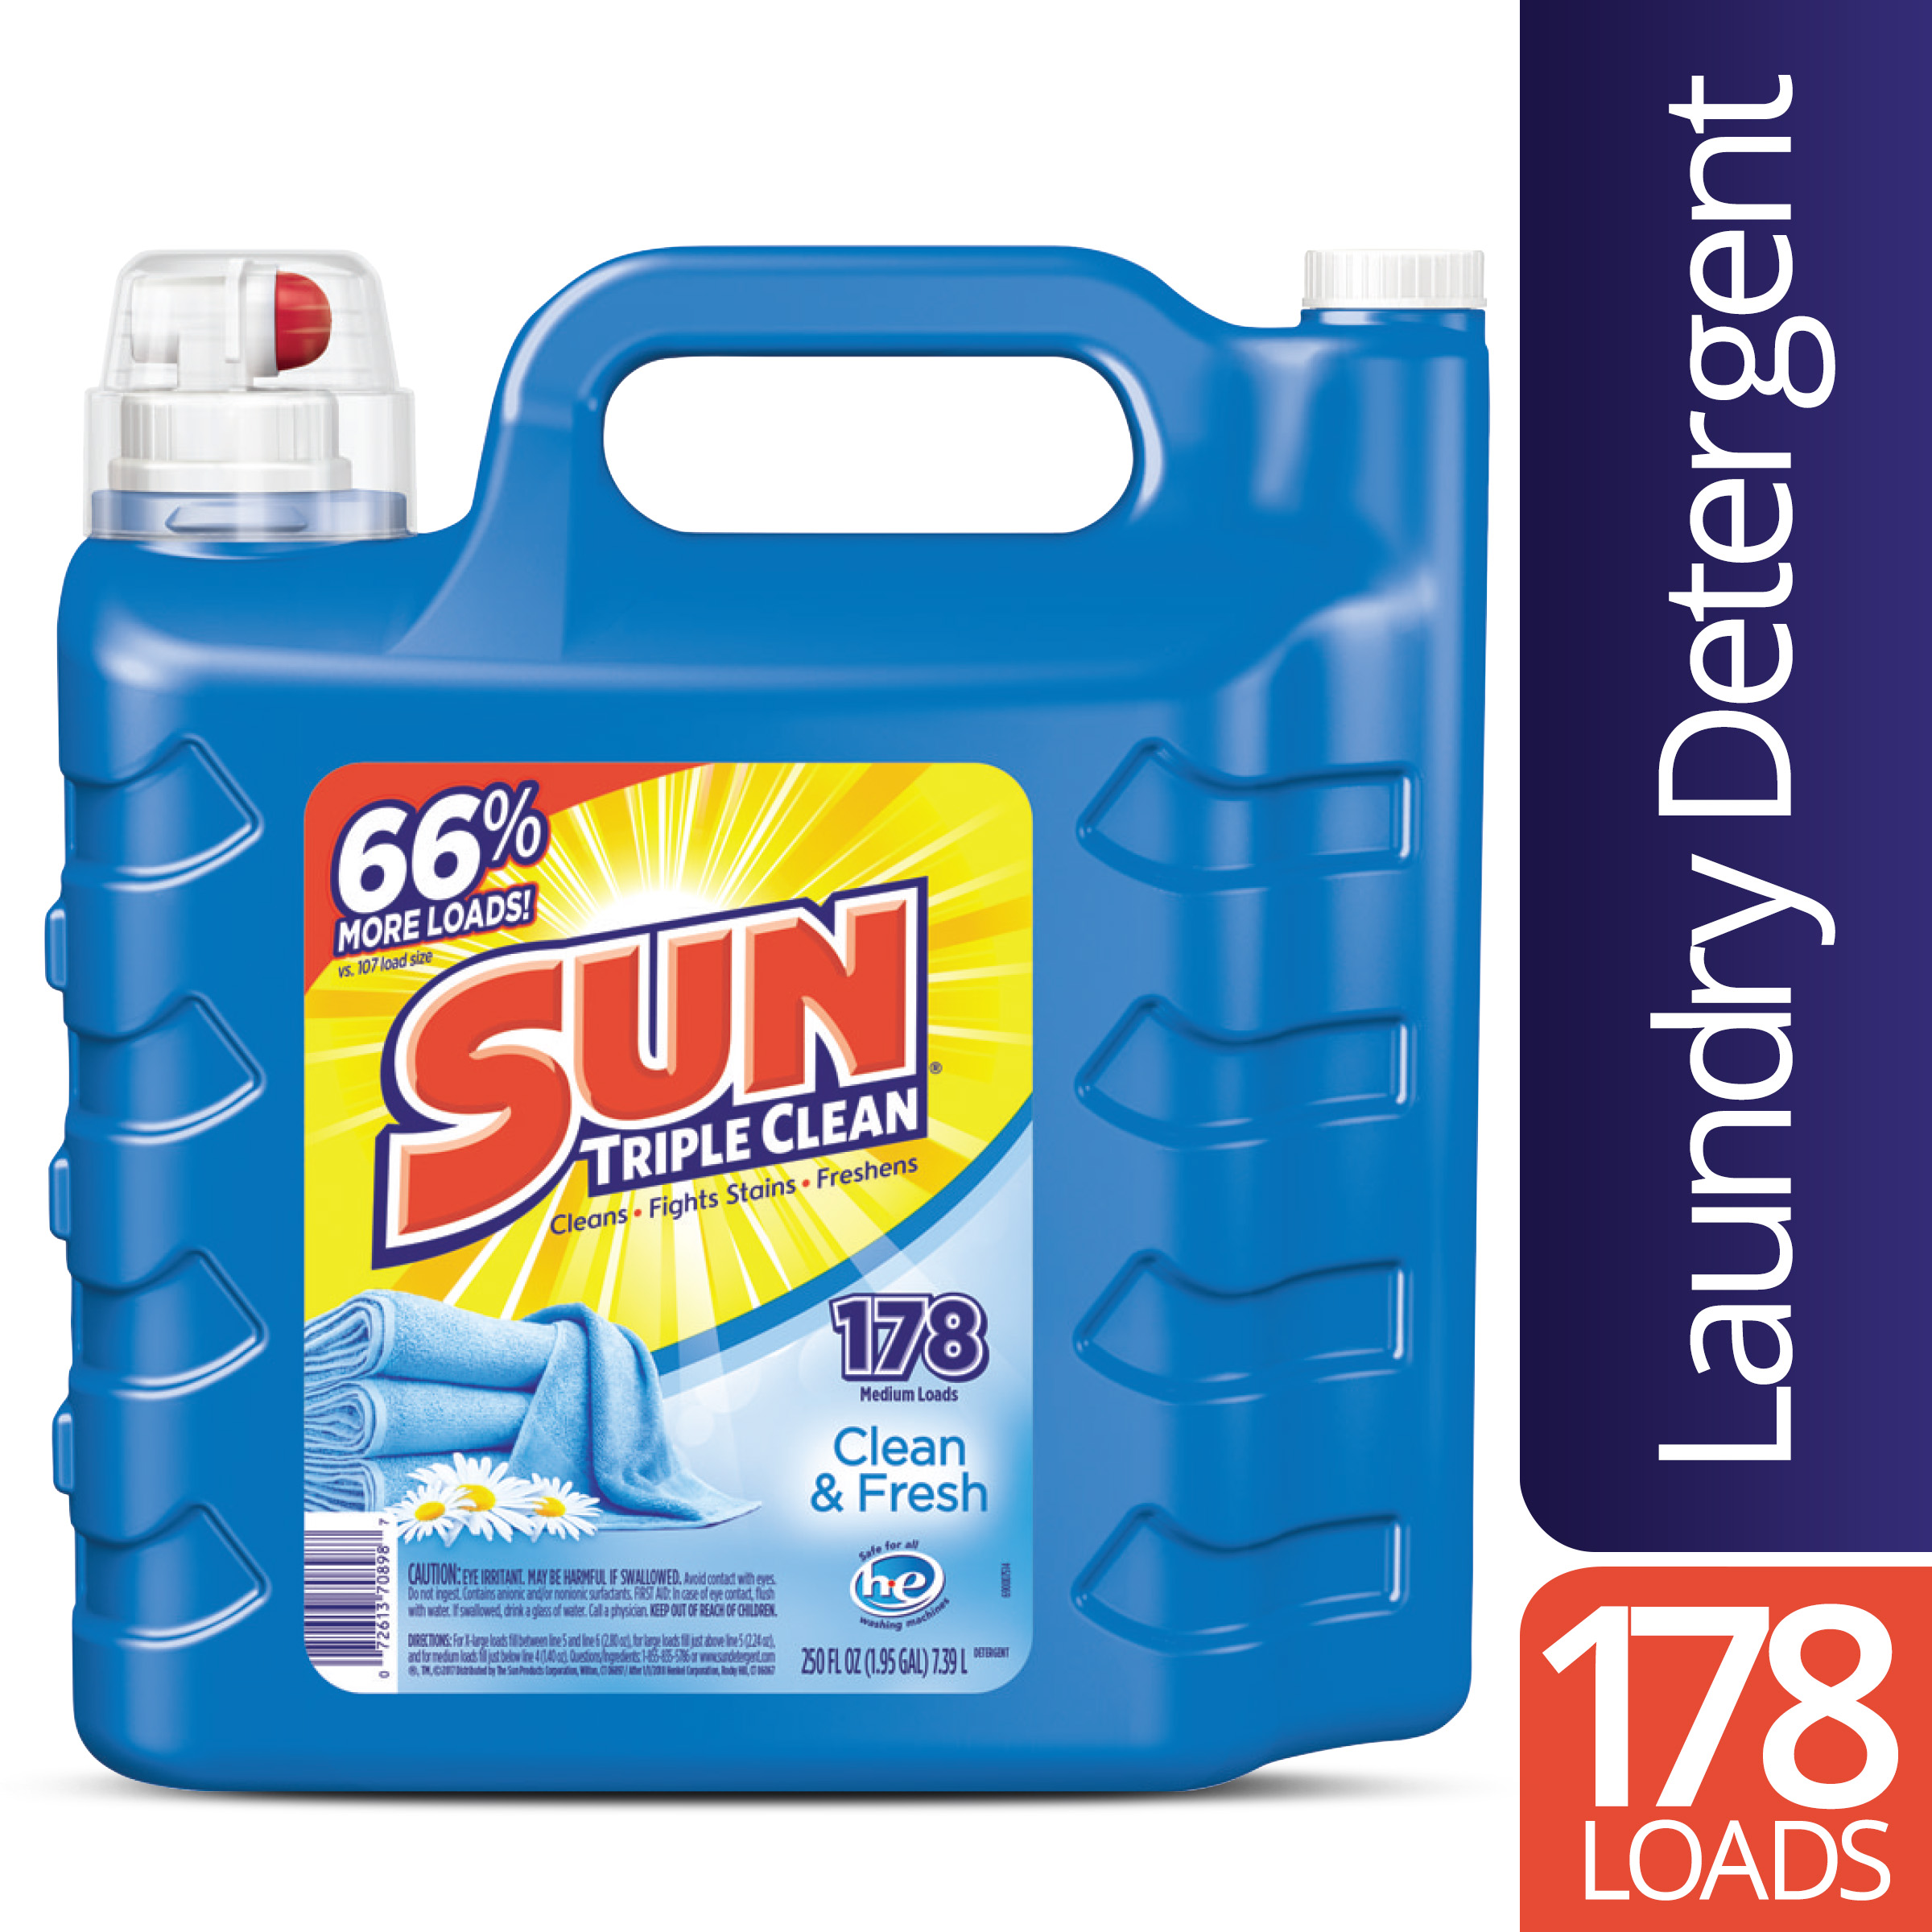 printable coupons for sun laundry detergent